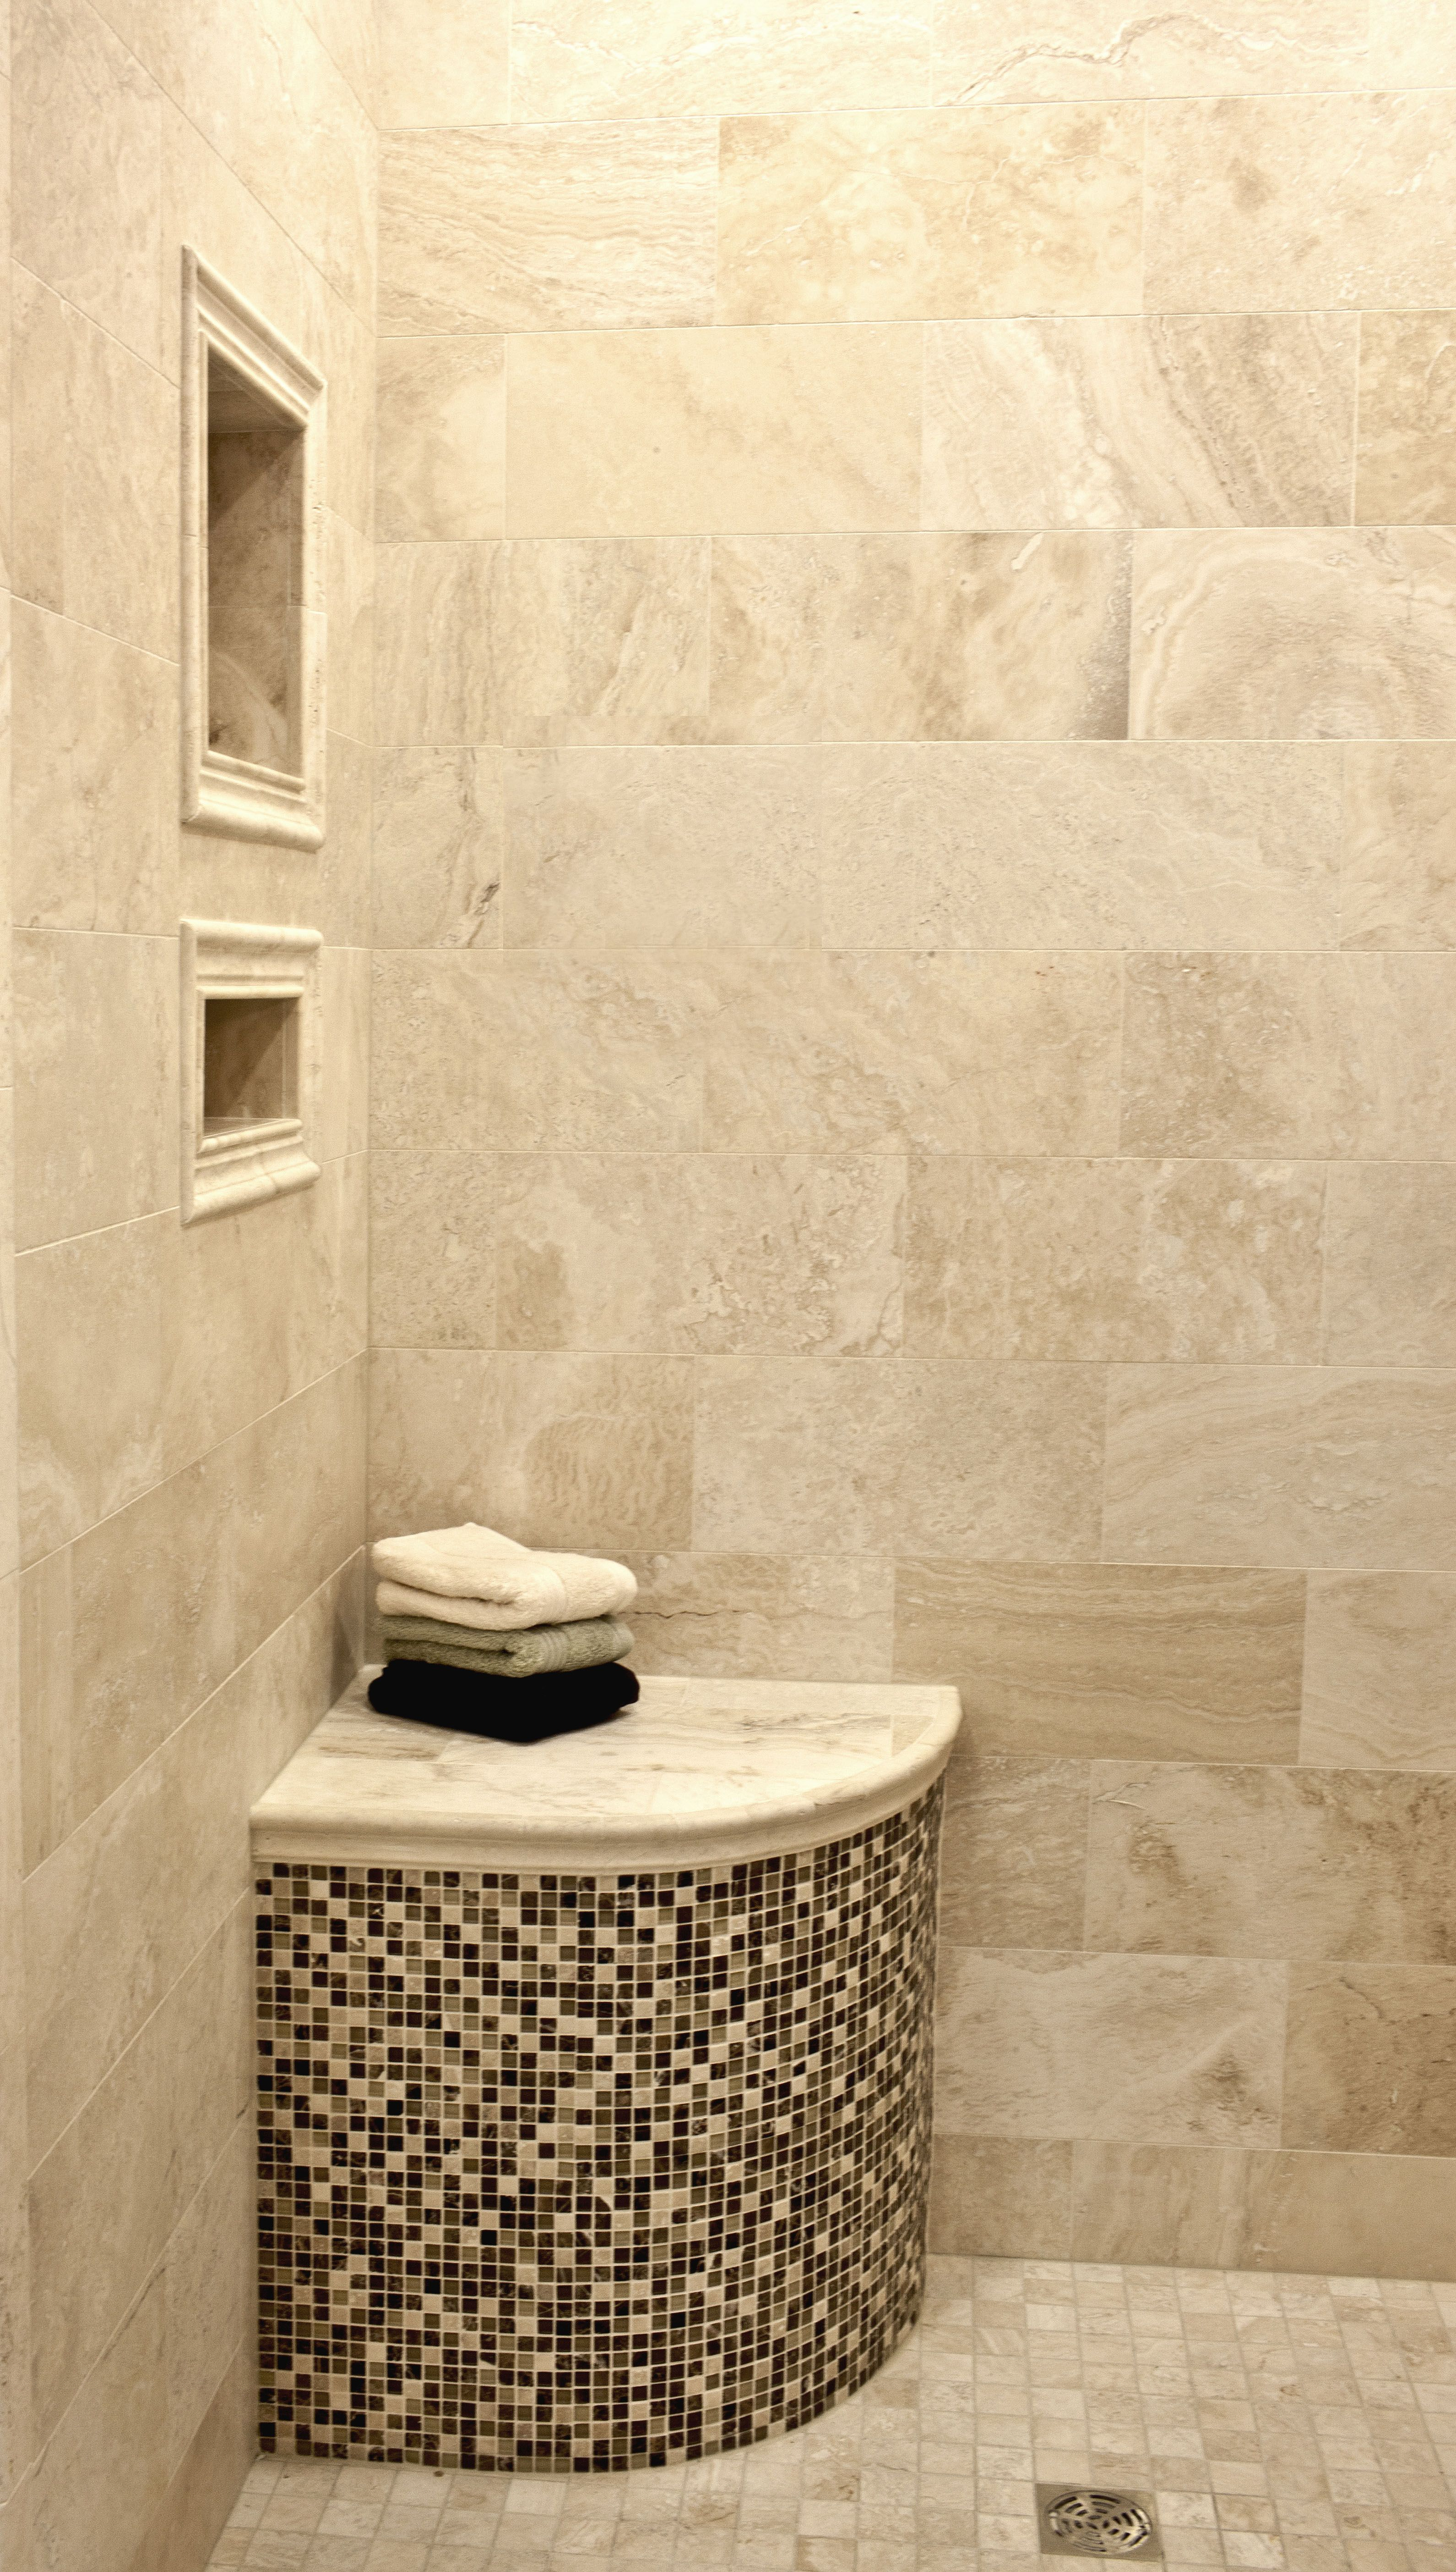 Like the idea of the seat in the shower tiled with the same